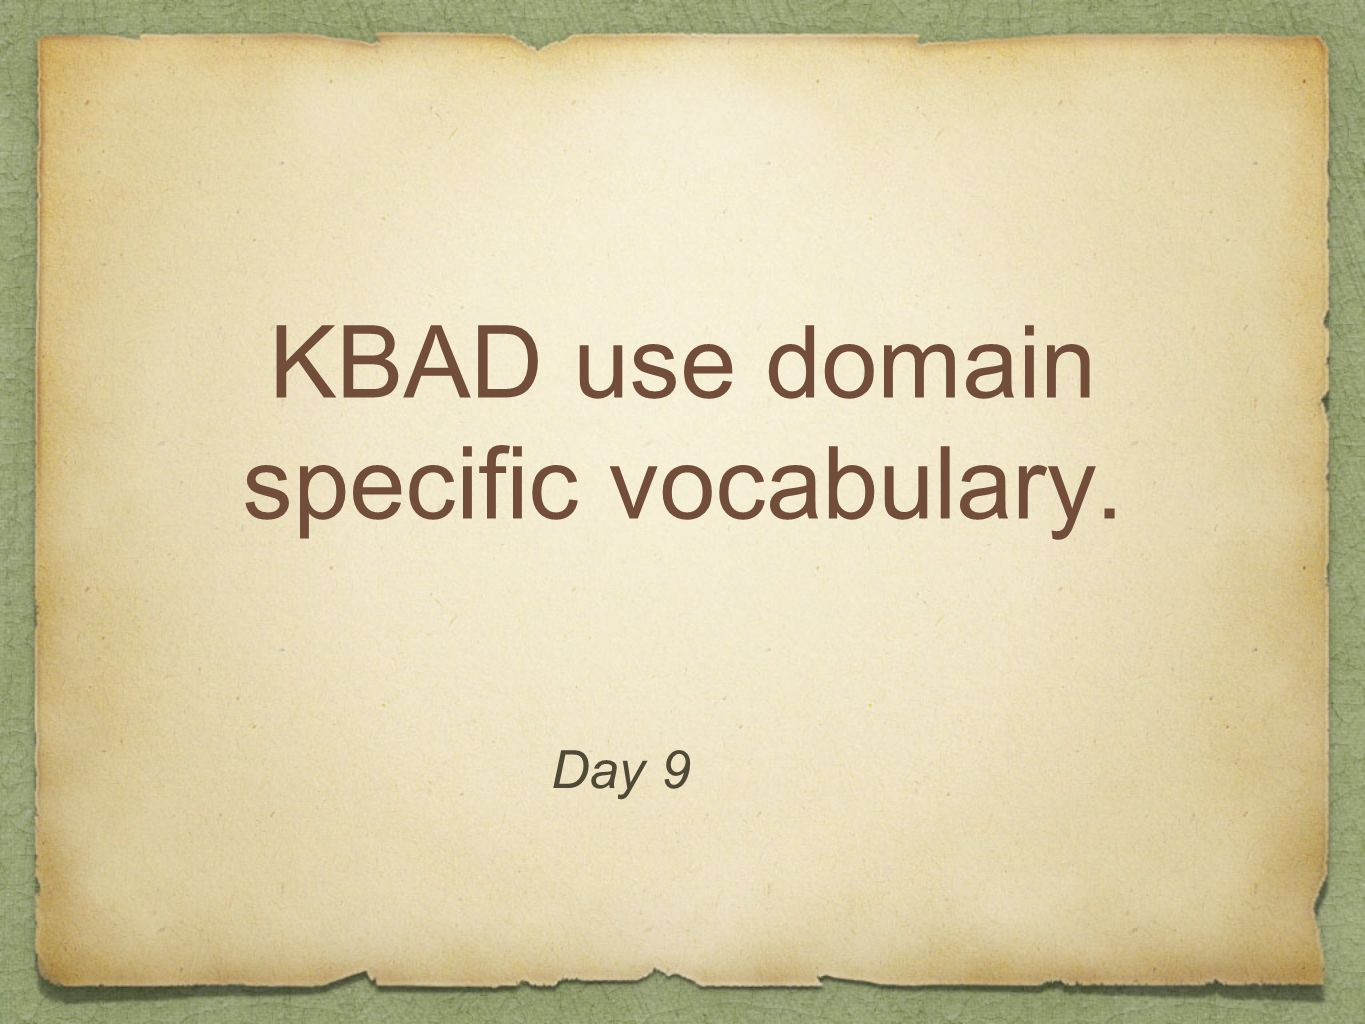 KBAD use domain specific vocabulary.